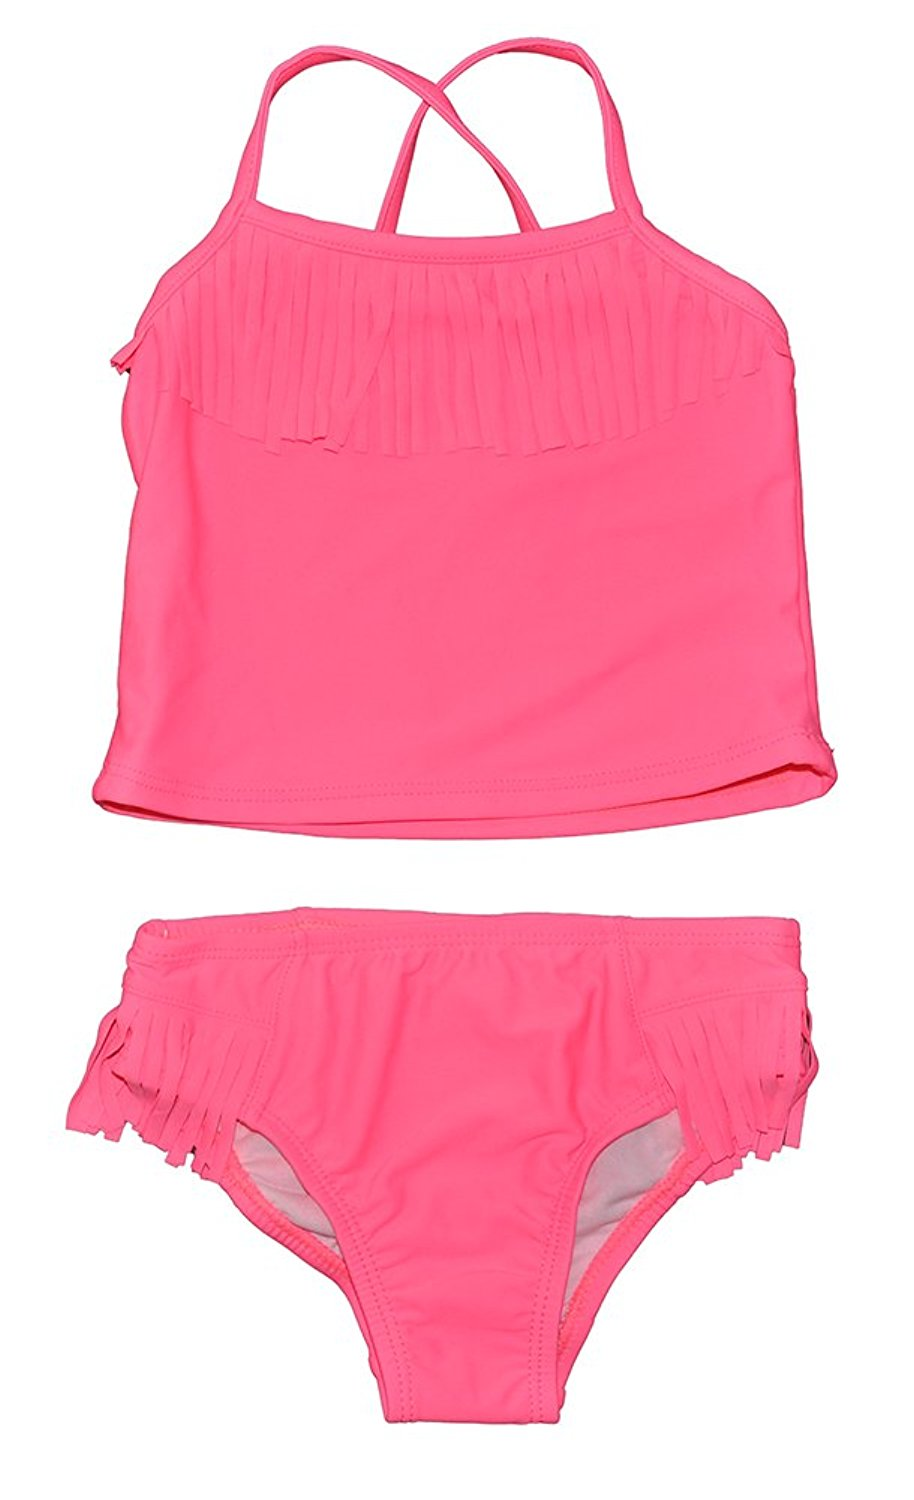 6b84279f06 Cheap Tankini With Fringe, find Tankini With Fringe deals on line at ...